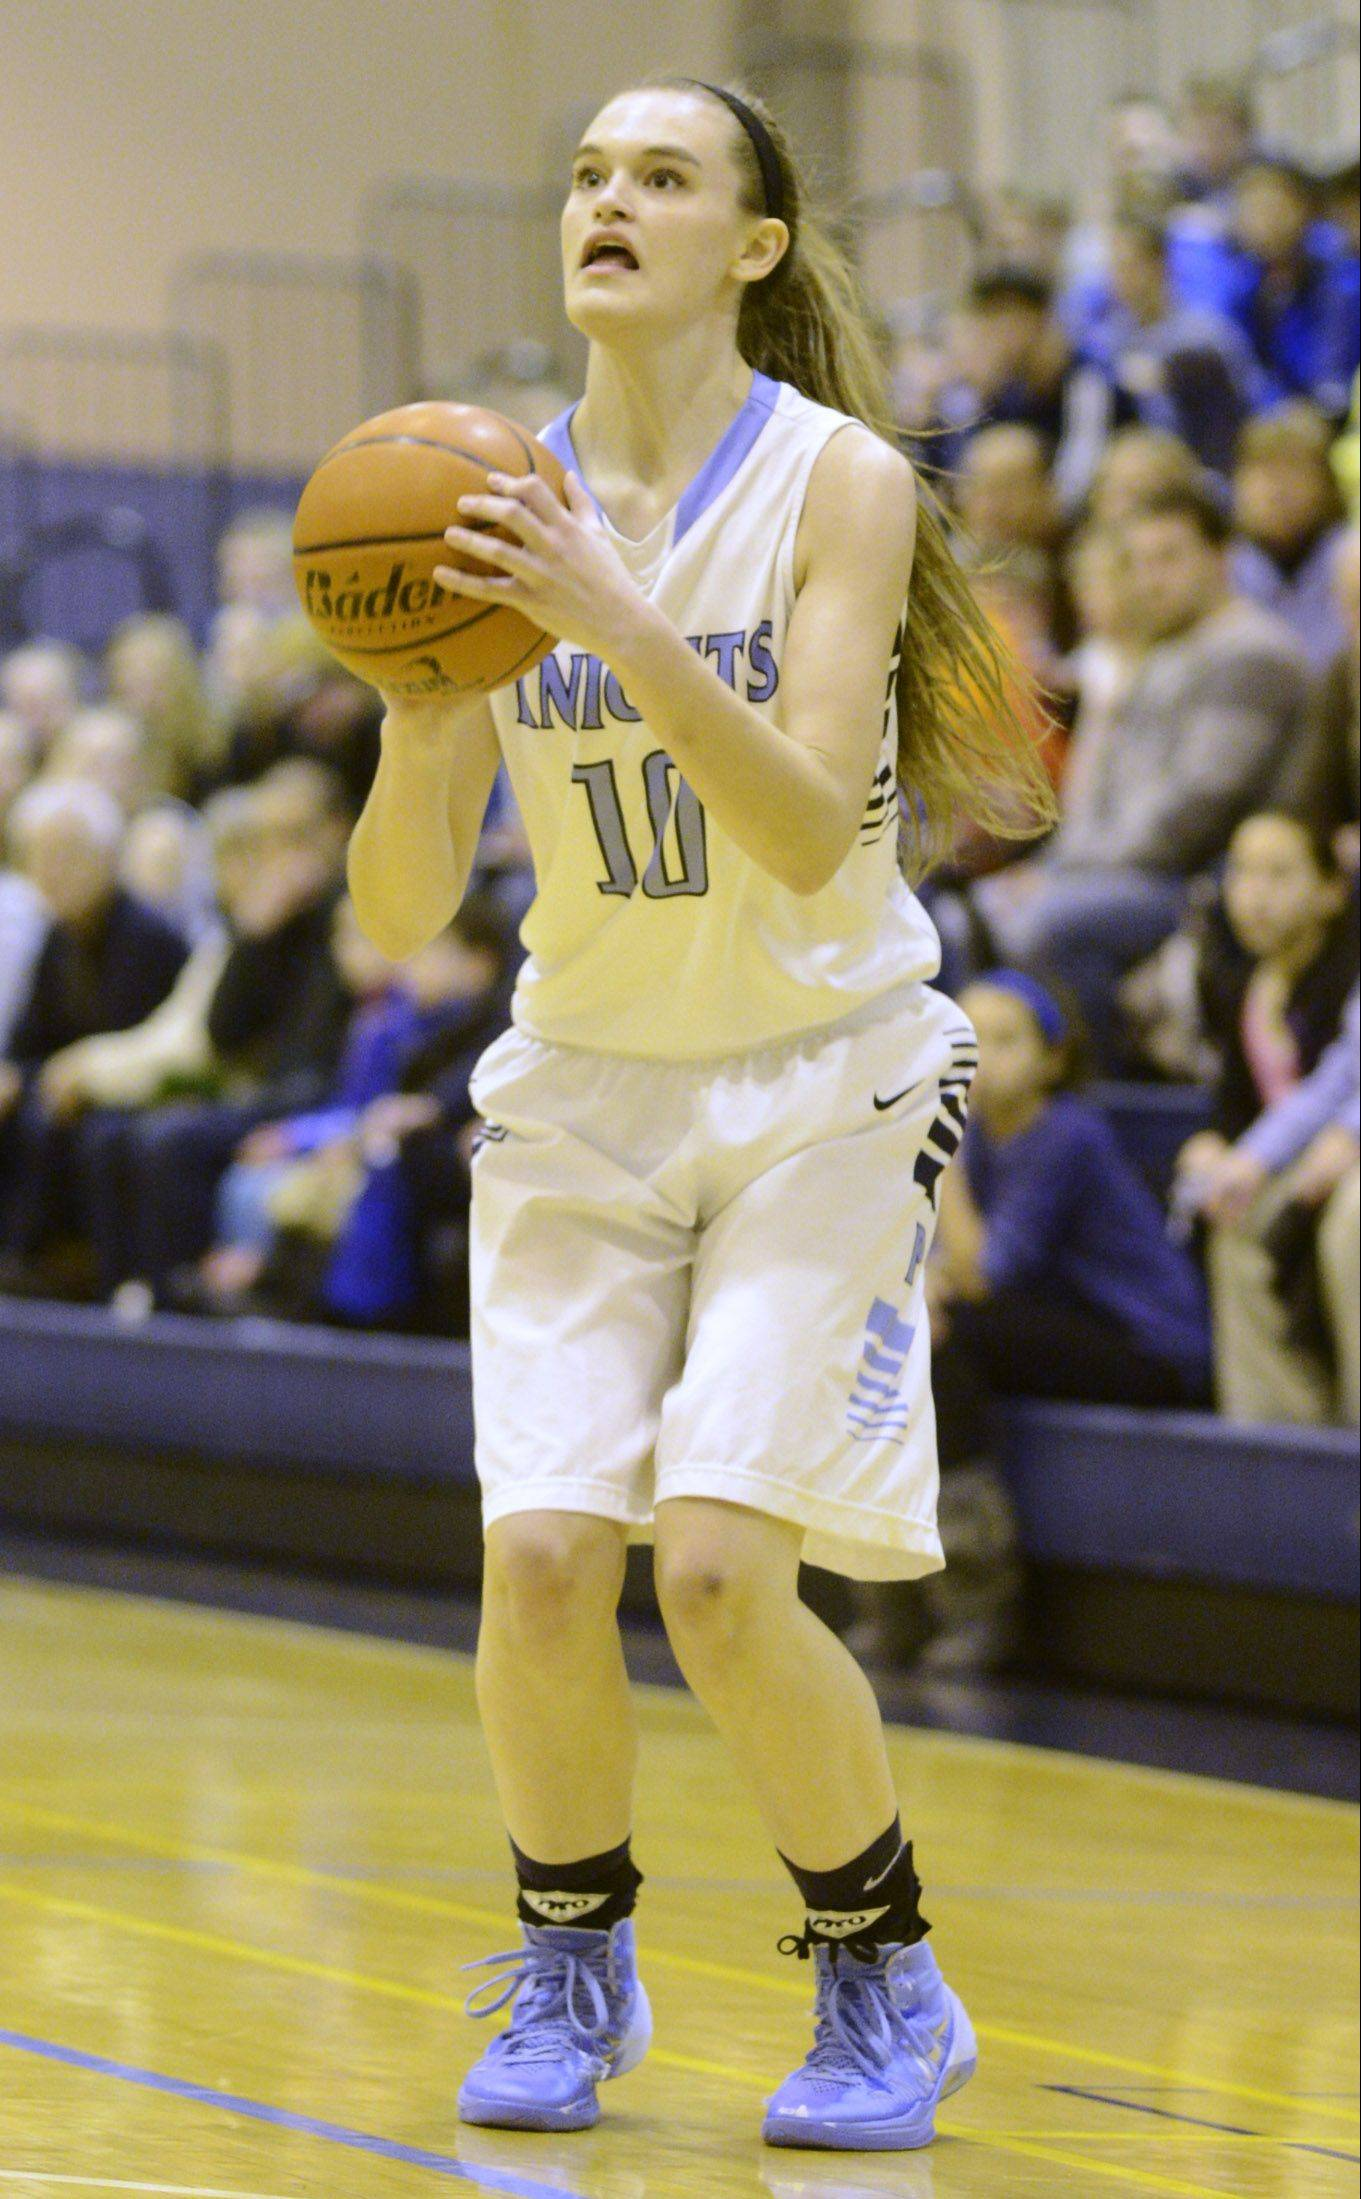 Prospect's Taylor Will surpasses 1,000-career points with a 3-pointer during Saturday's game against Rolling Meadows.